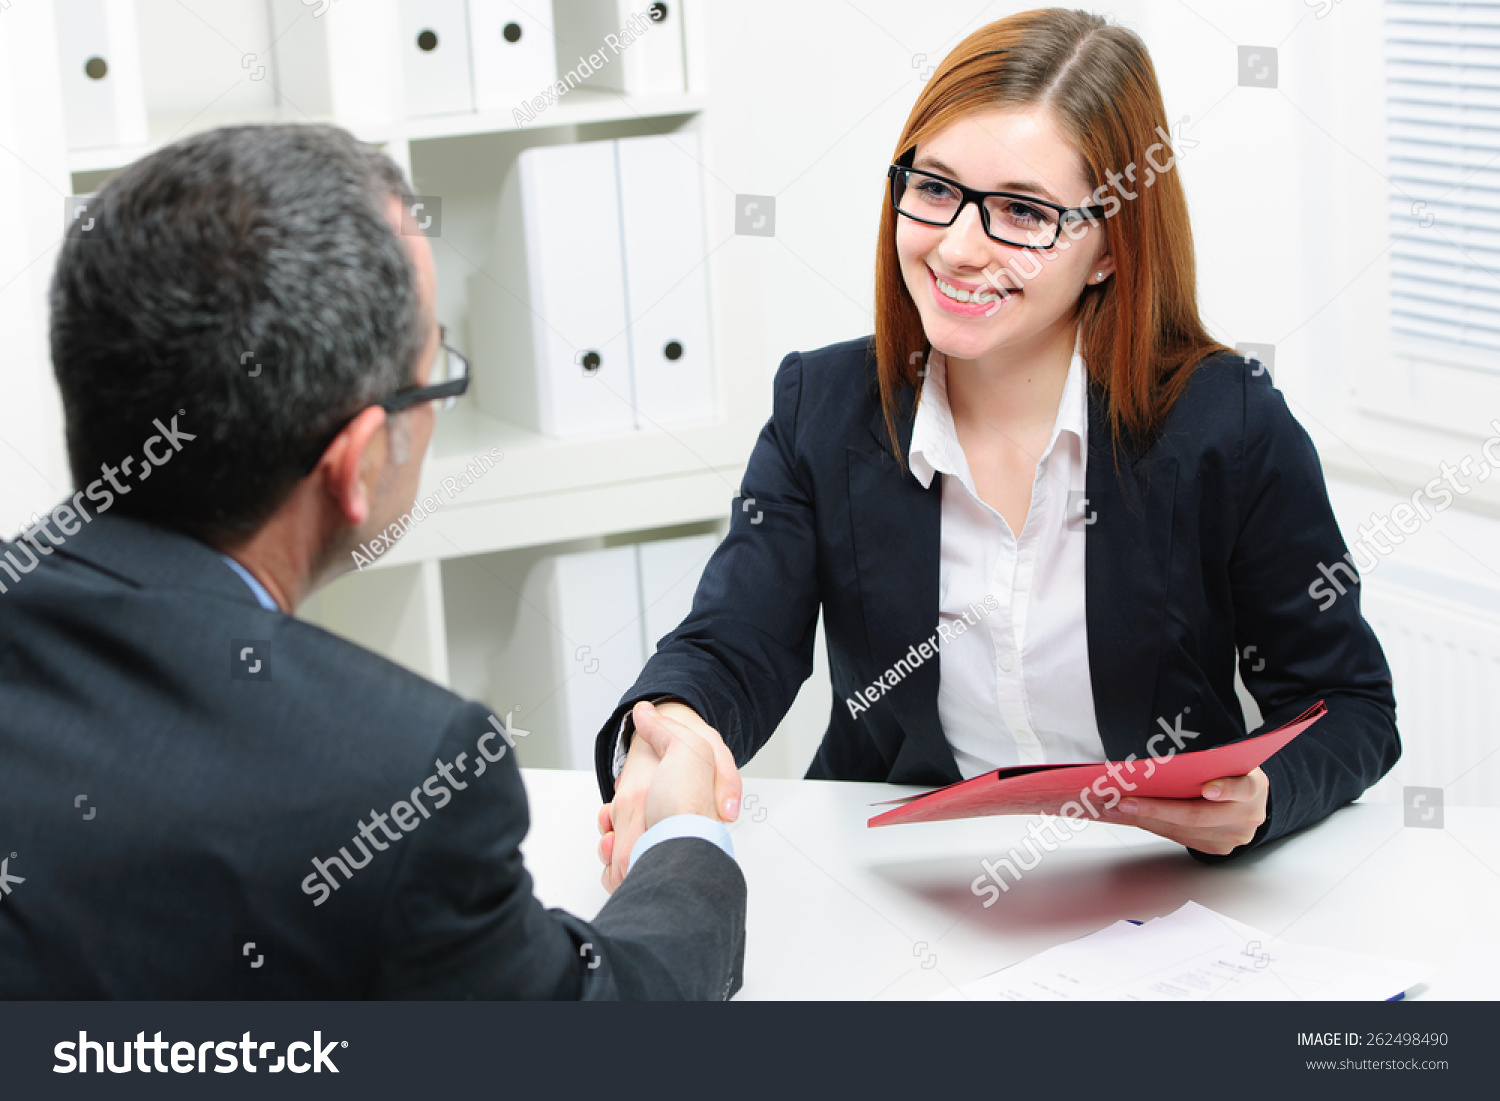 job applicant having interview handshake while stock photo job applicant having interview handshake while job interviewing